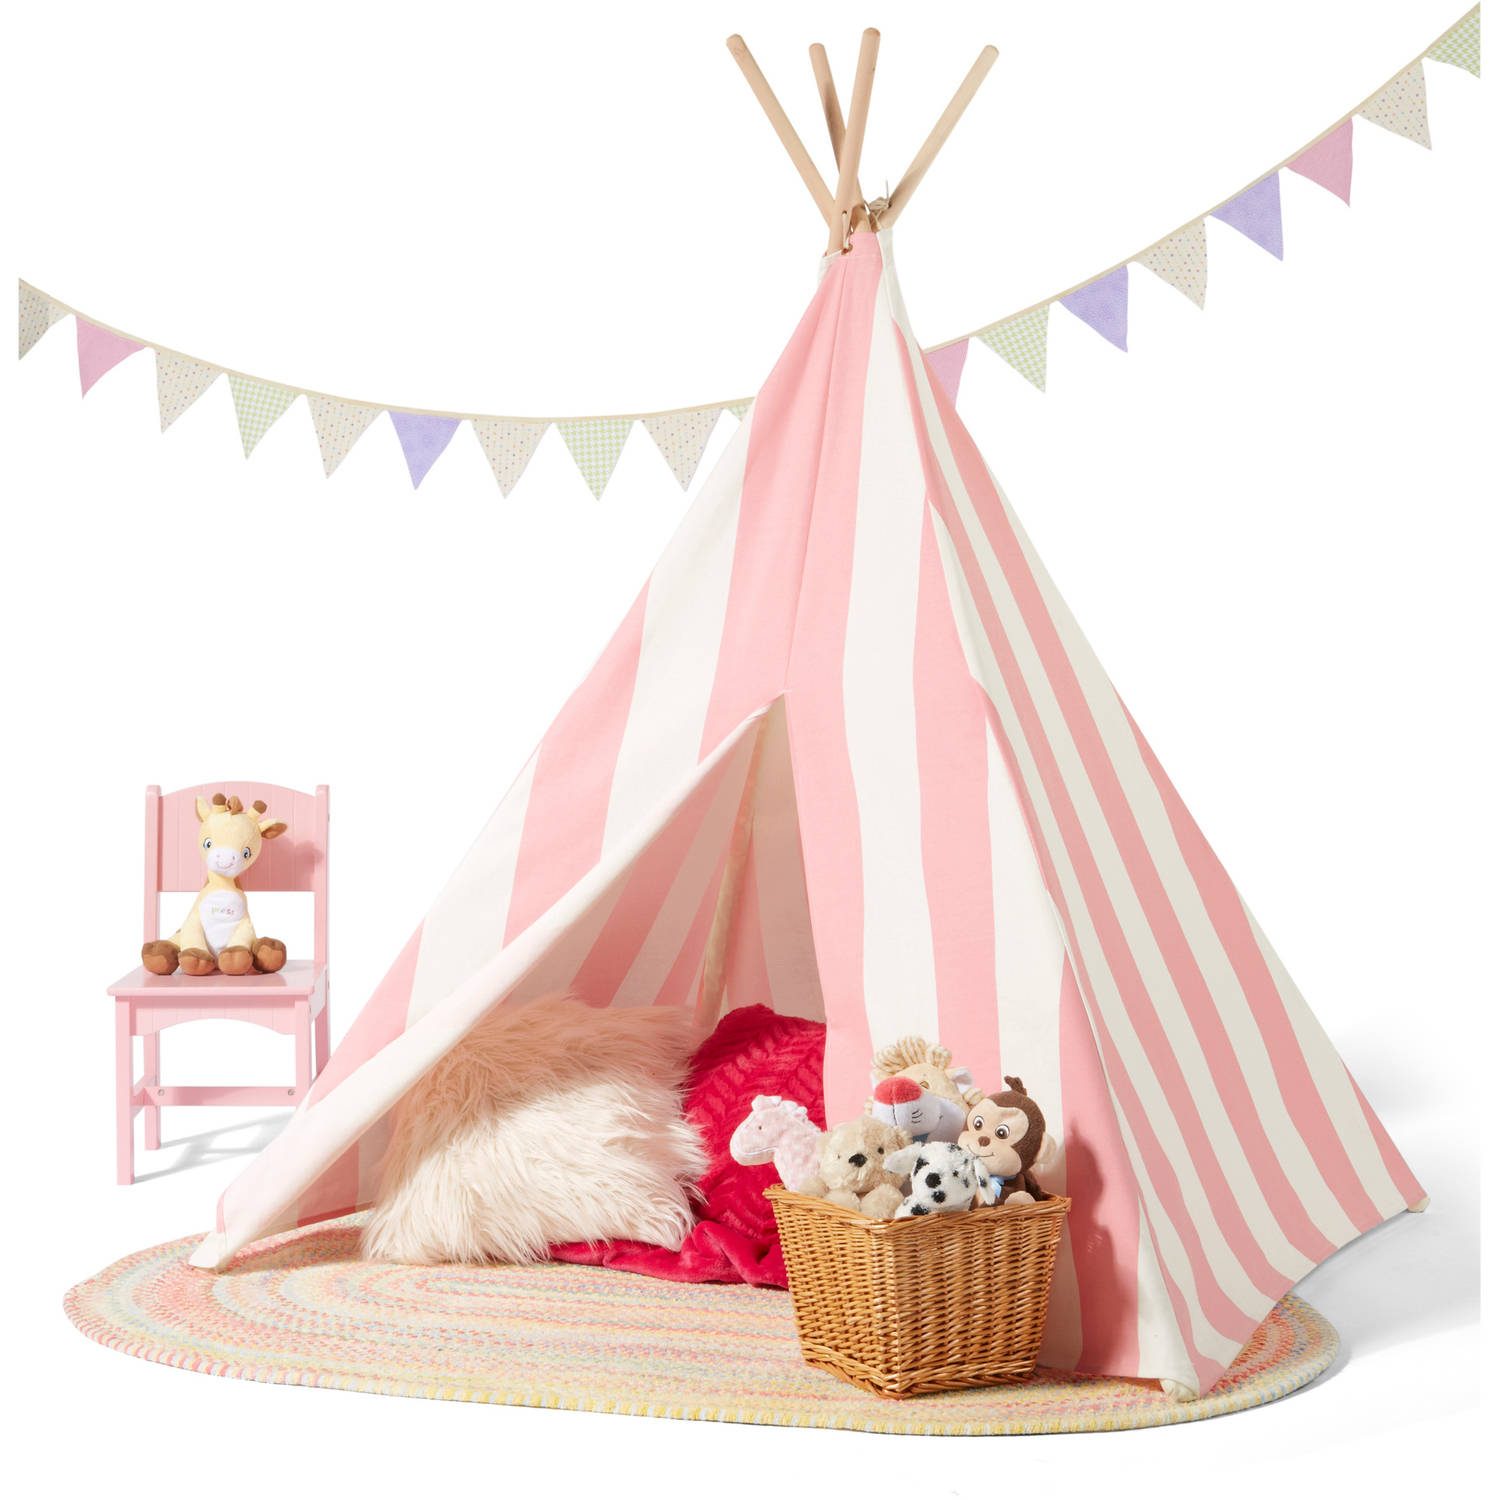 Childrenu0027s Teepee Tent Pink/White Stripes  sc 1 st  Walmart & Childrenu0027s Teepee Tent Pink/White Stripes - Walmart.com